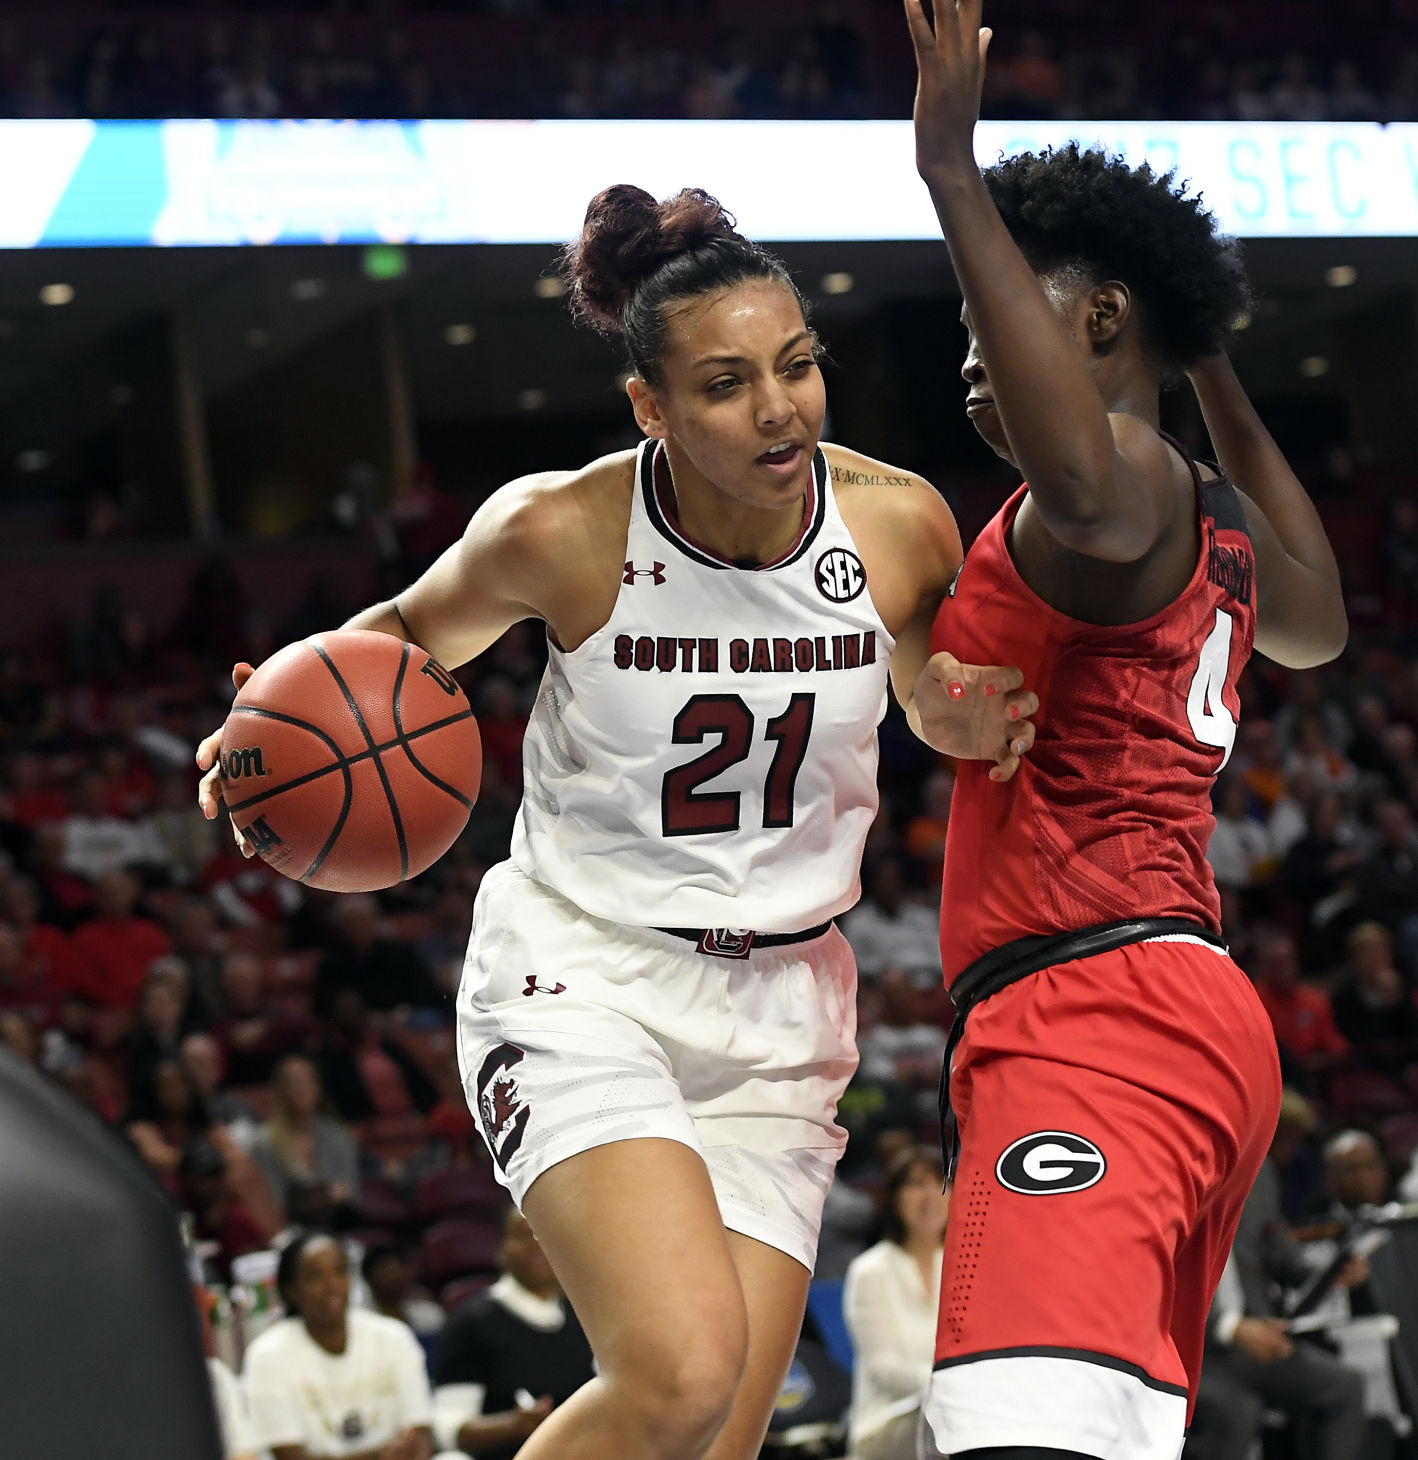 Ears ringing, Wilson, Gamecocks advance to SEC final